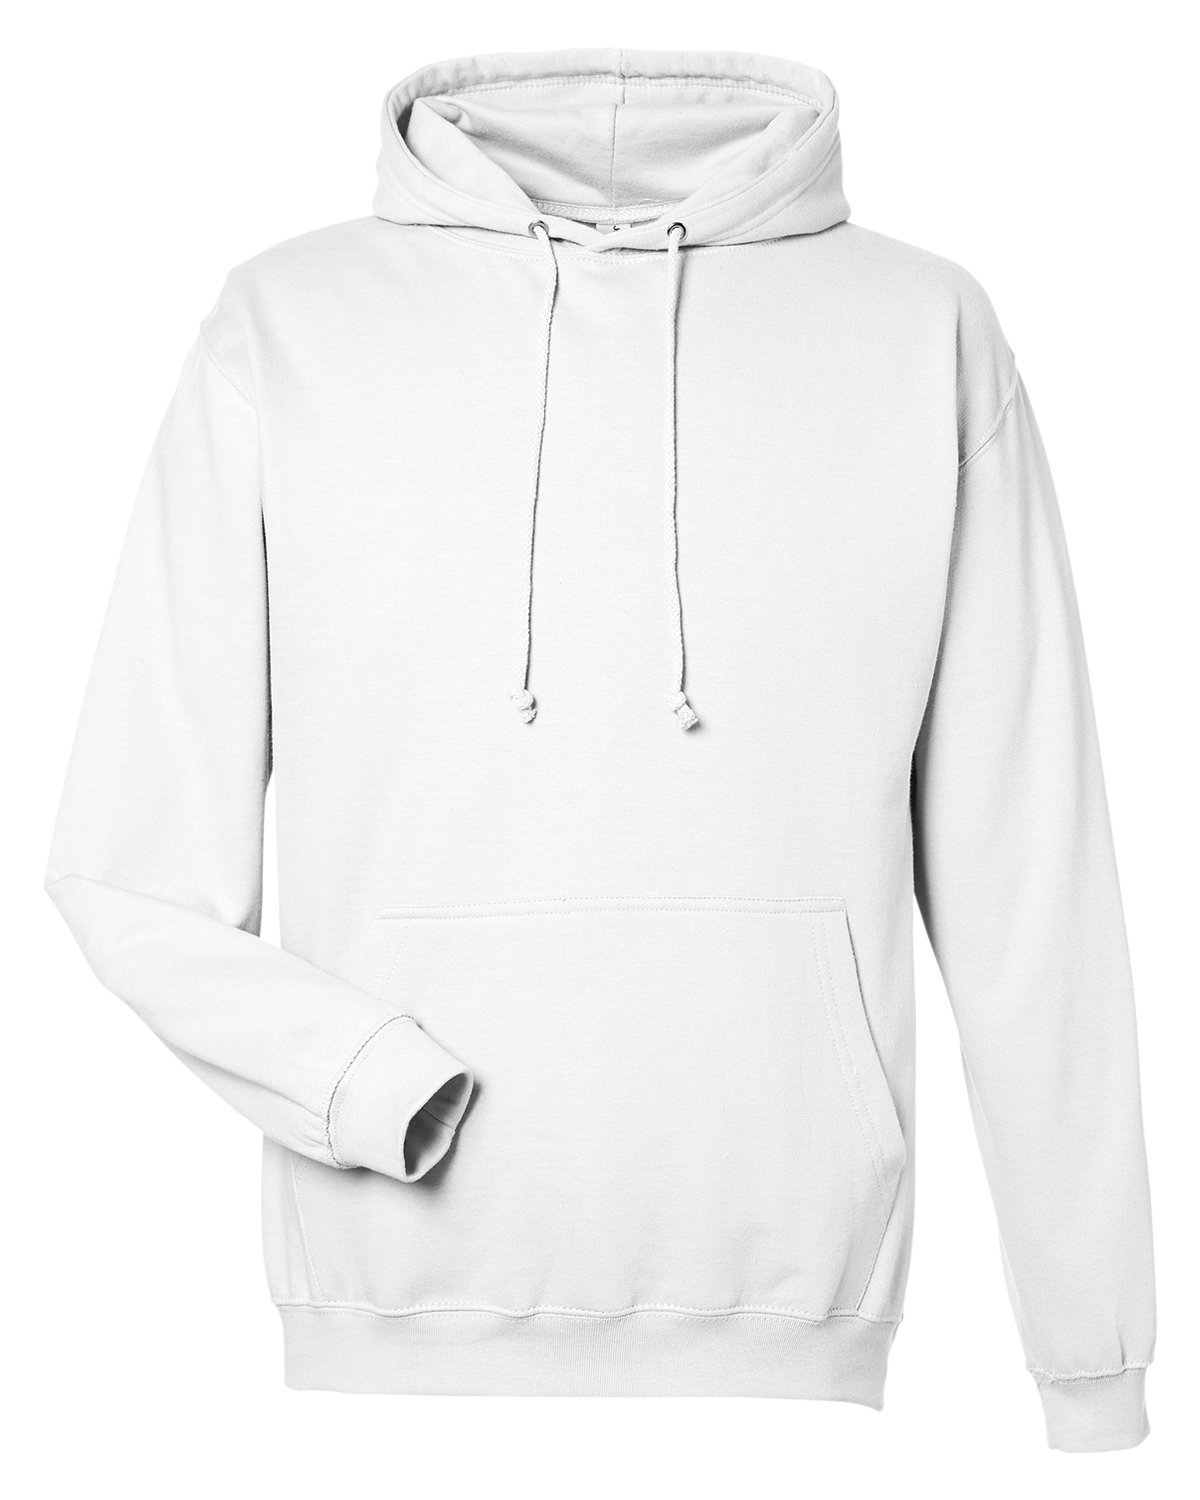 Just Hoods By AWDis Men's 80/20 Midweight College Hooded Sweatshirt ARCTIC WHITE